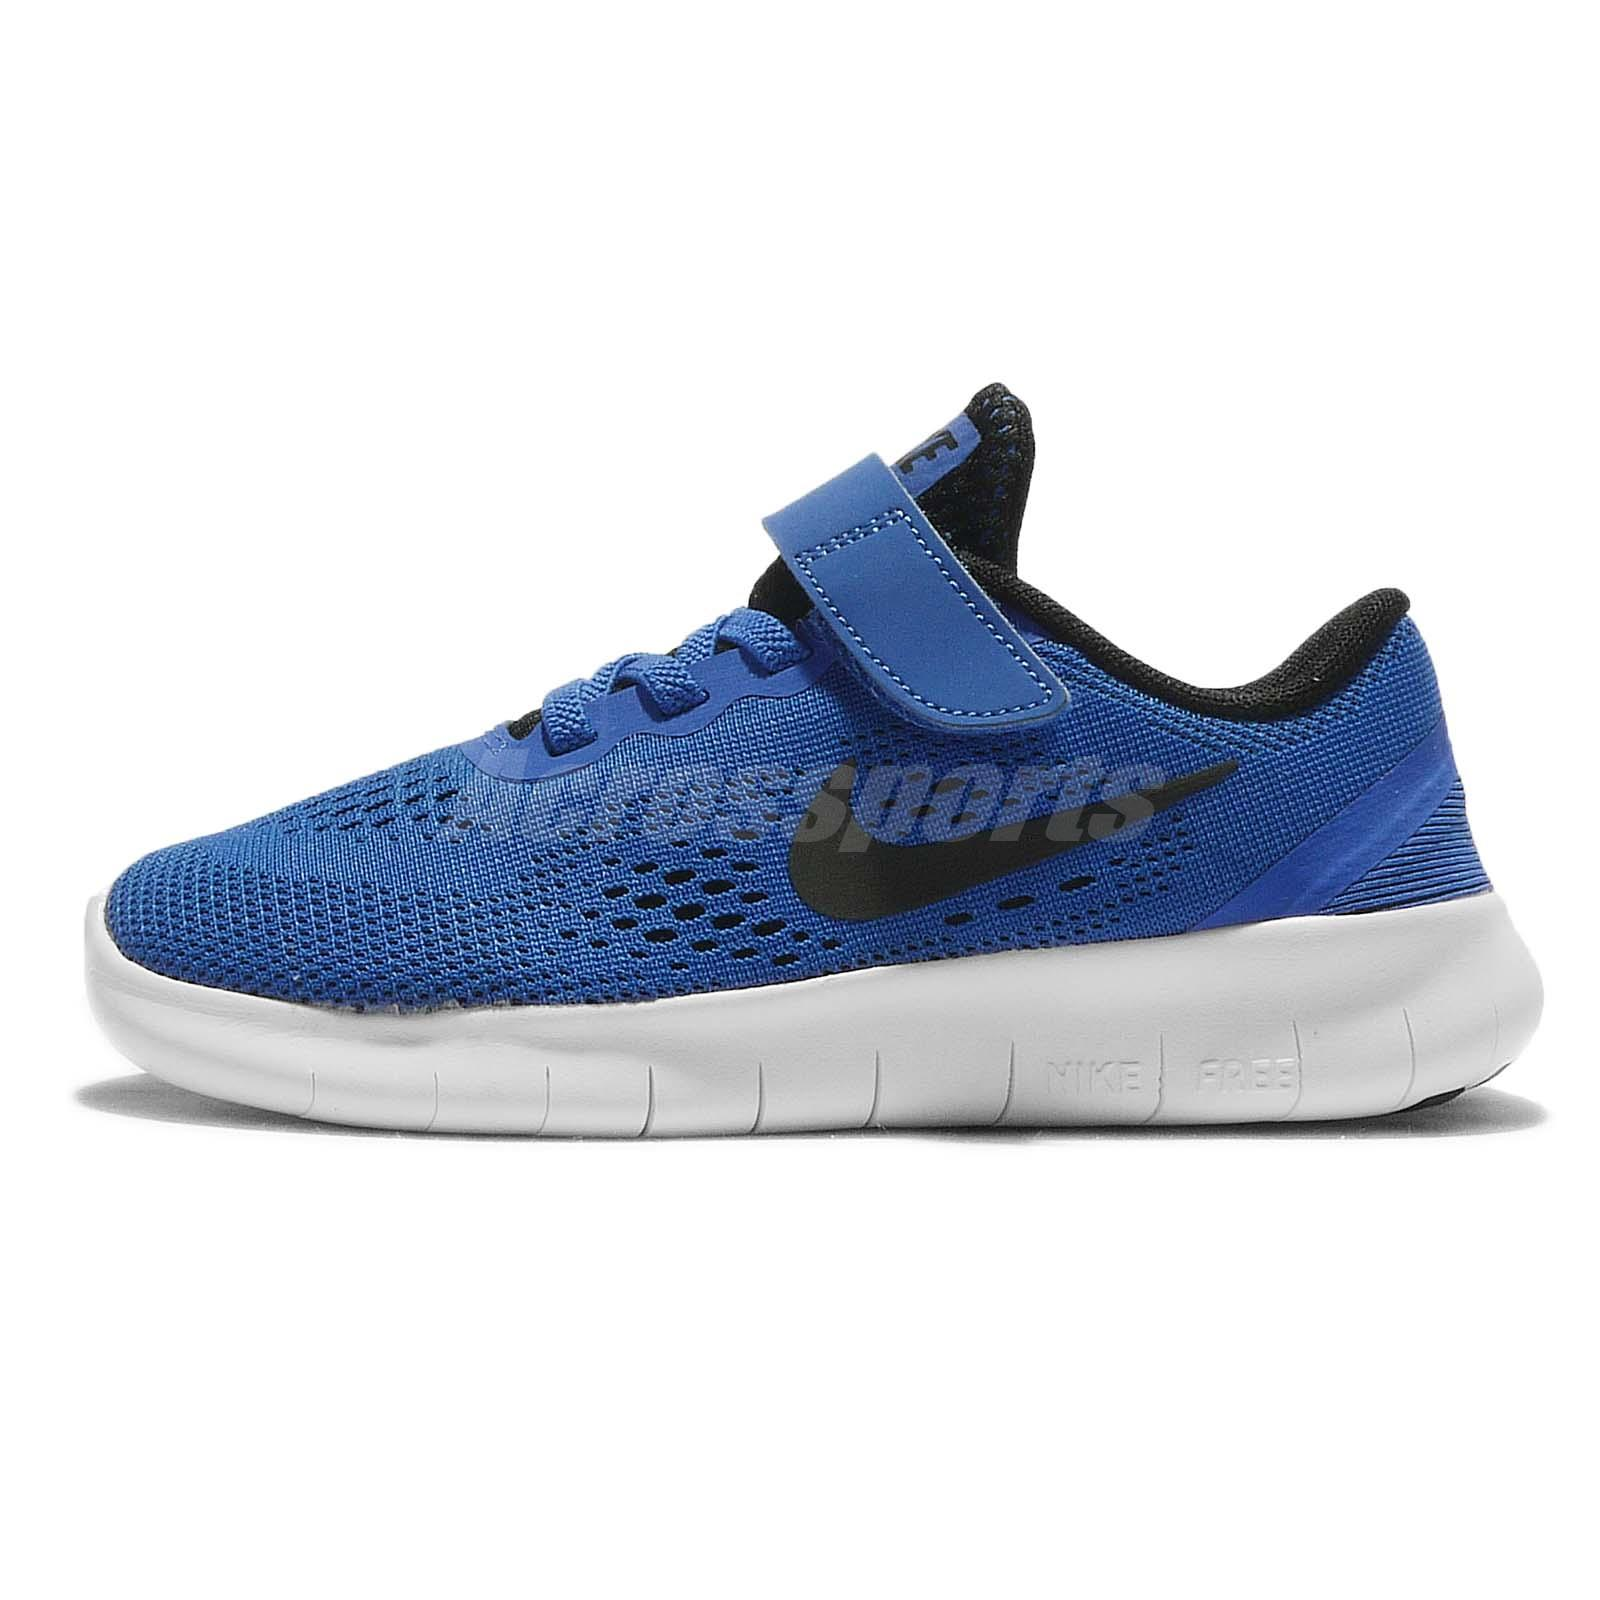 nike free preschool nike free rn psv black blue preschool boys running shoes 330